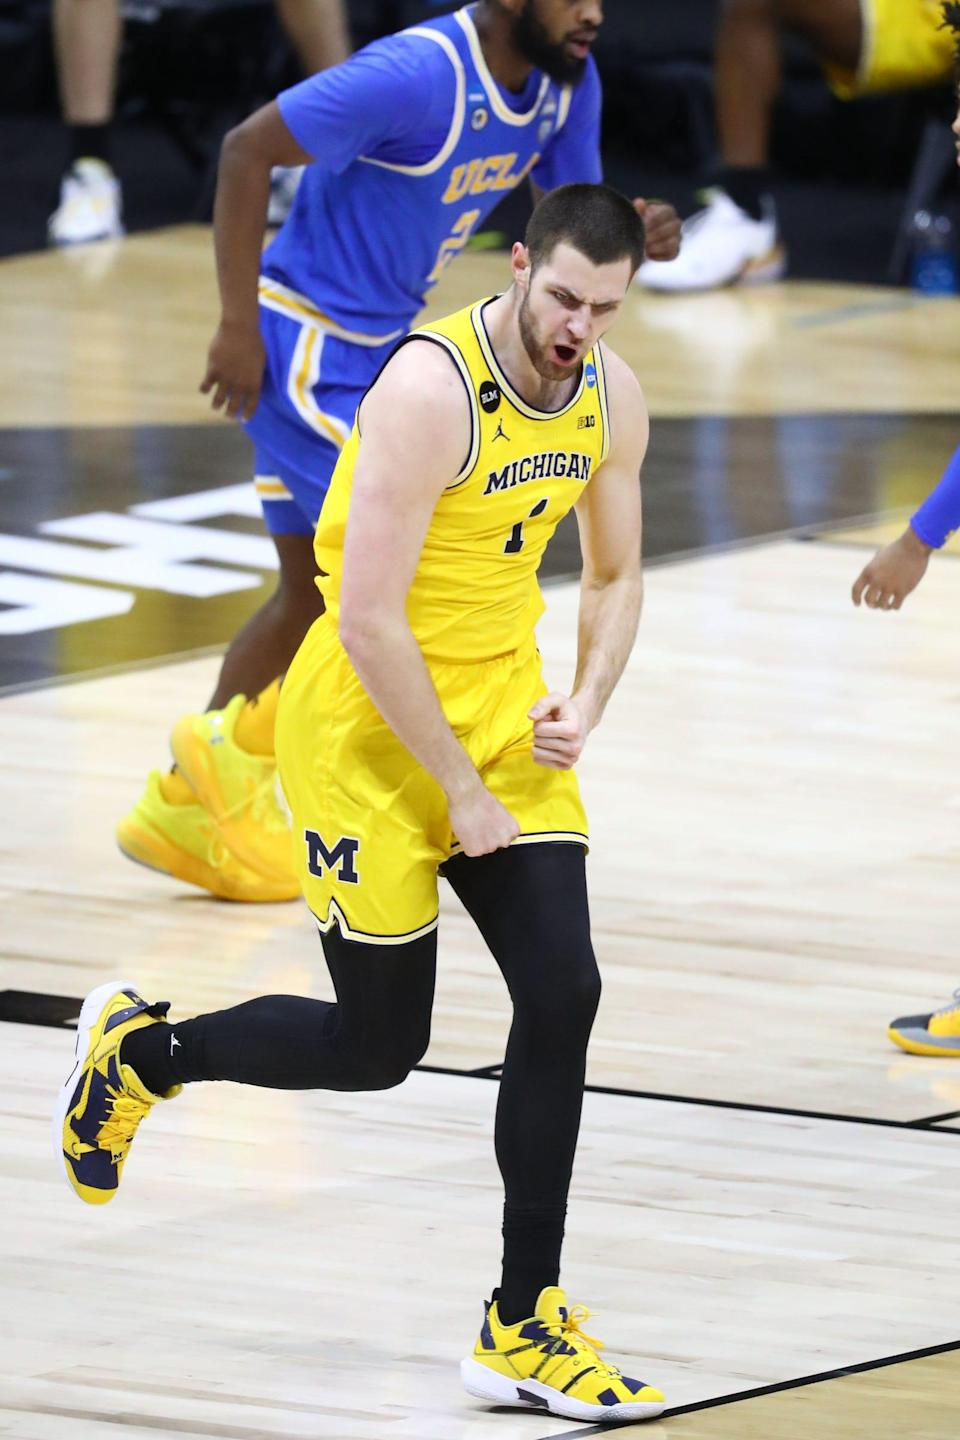 Michigan center Hunter Dickinson reacts during the first half of the Elite Eight game in the NCAA tournament on Tuesday, March 30, 2021, in Indianapolis.